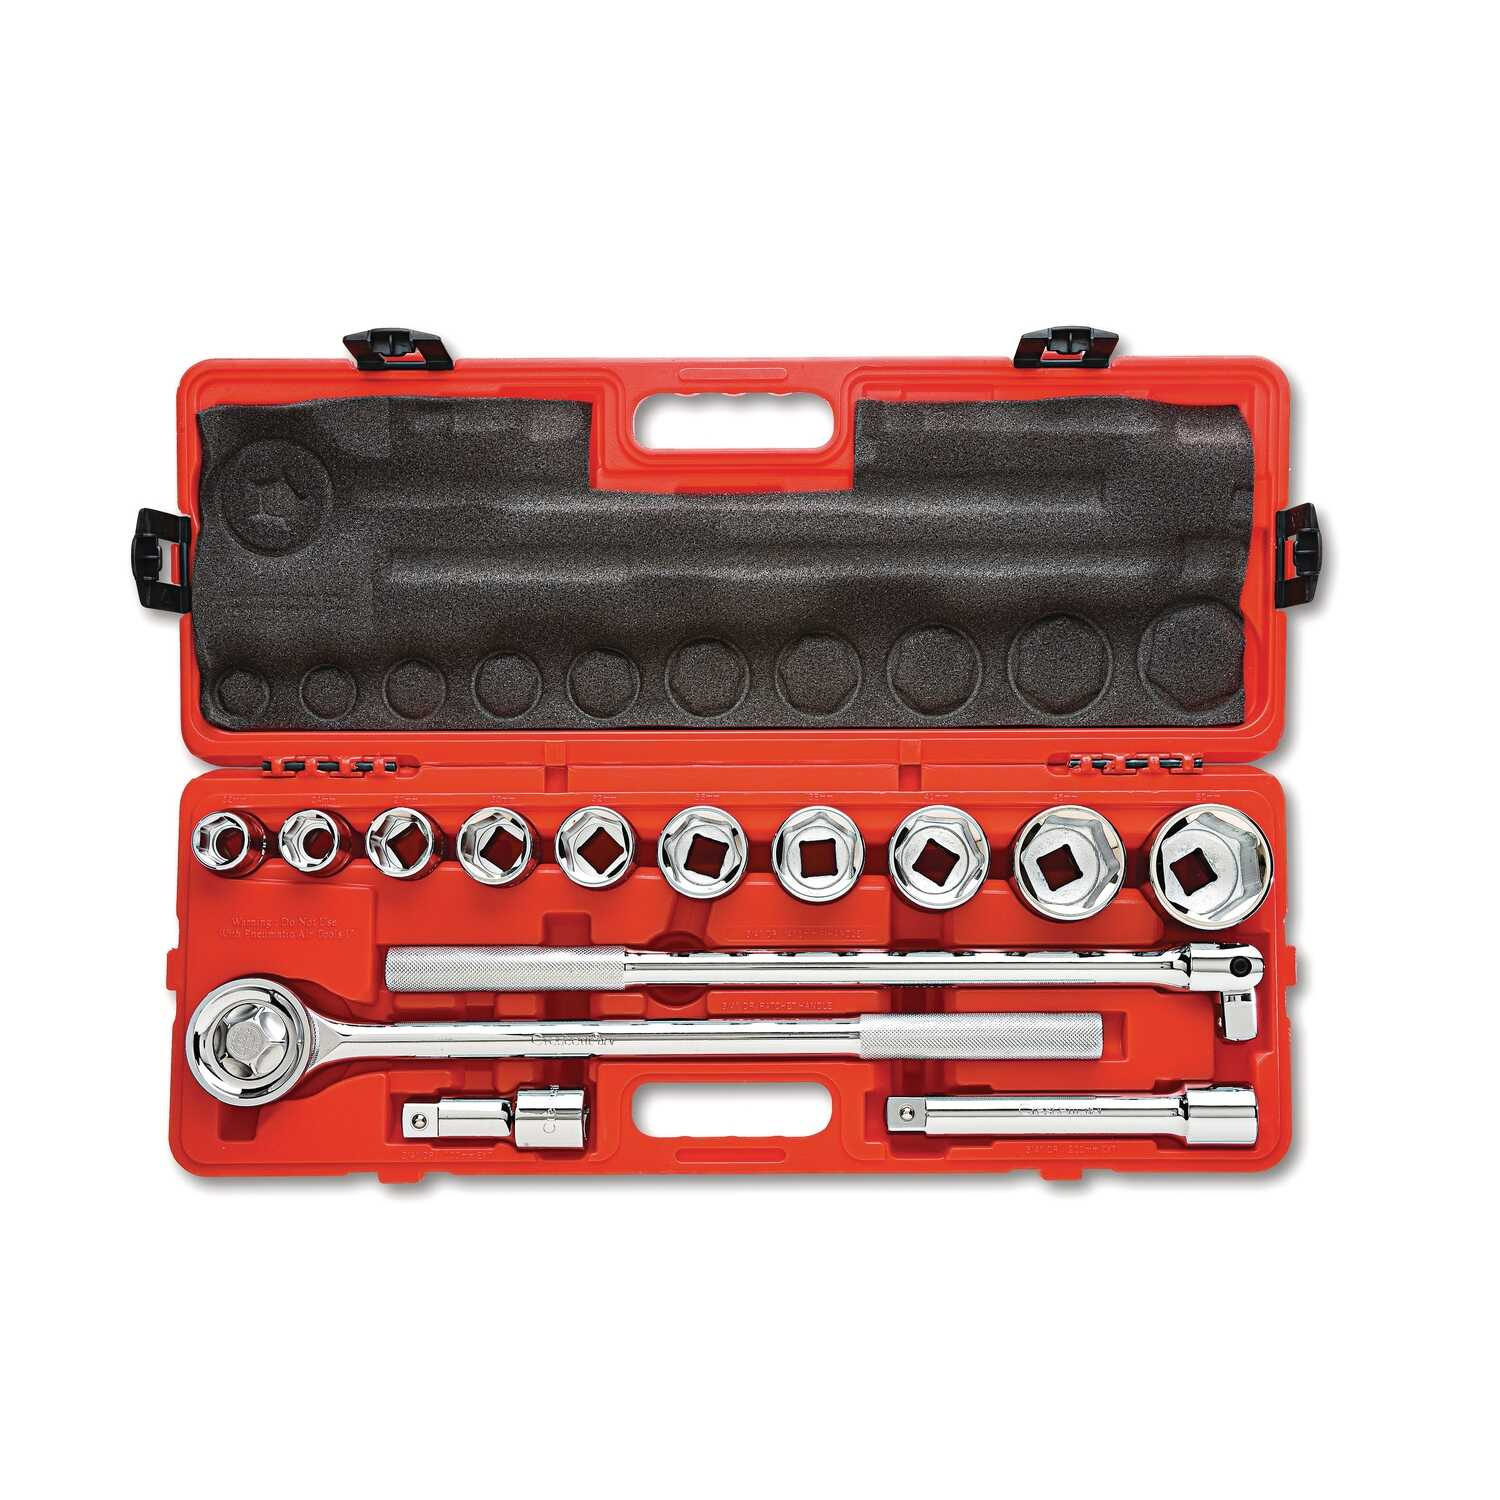 Crescent  Assorted Sizes  x 3/4 in. Drive   Metric  6 and 12  Mechanics Tool Set  14 pc.